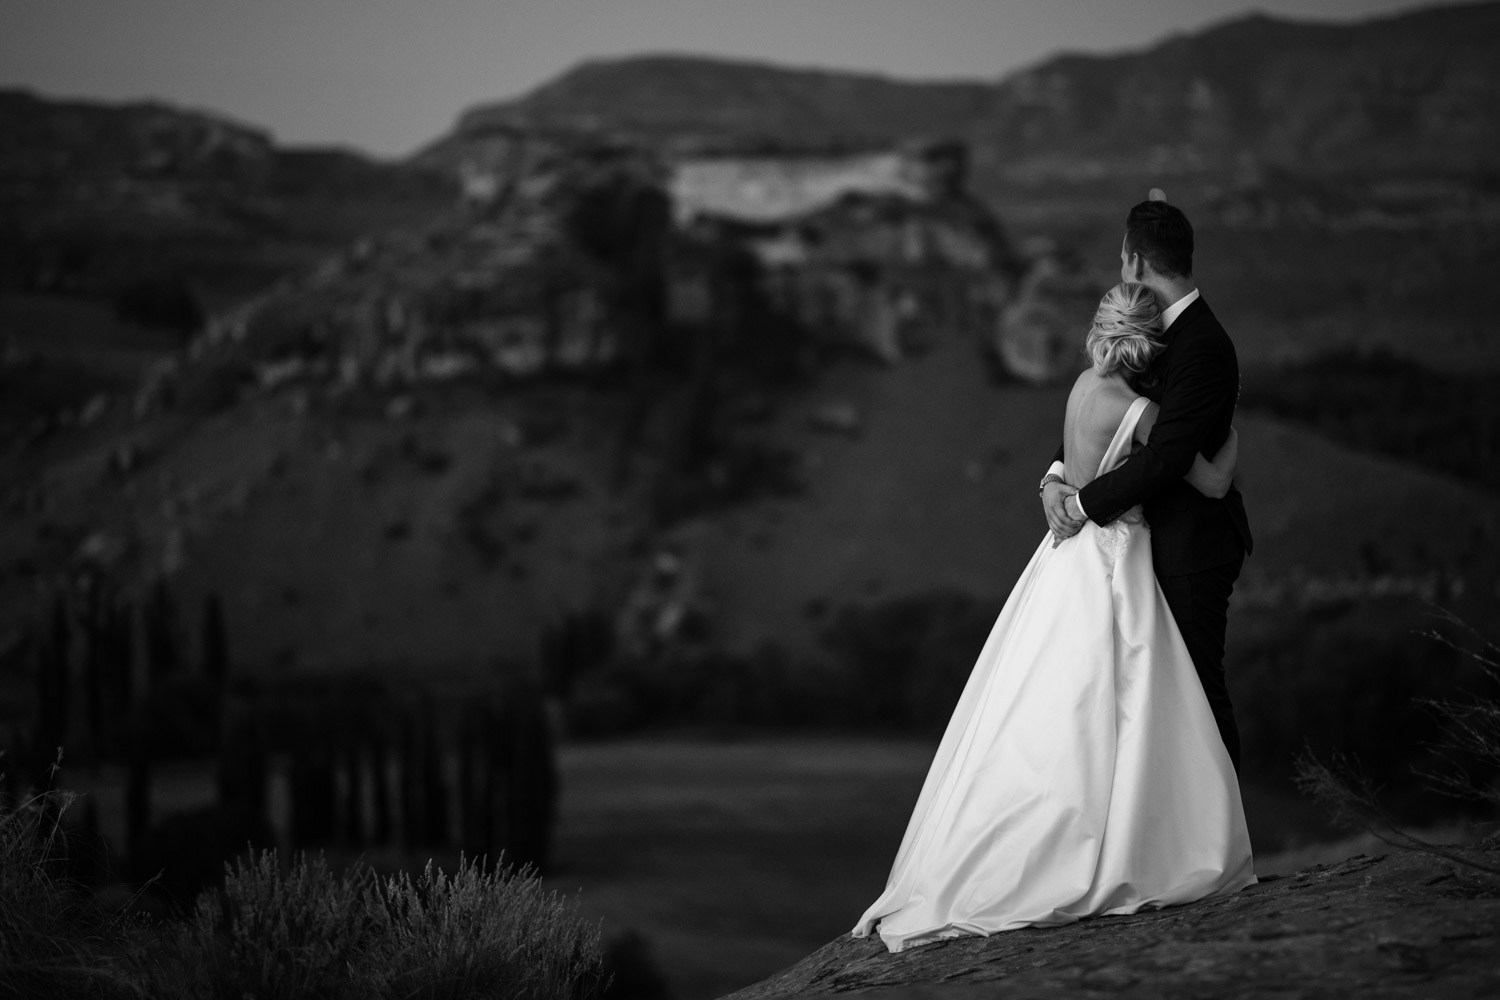 Bride And Groom Portrait In Epic Vancouver Mountain Location Dusk